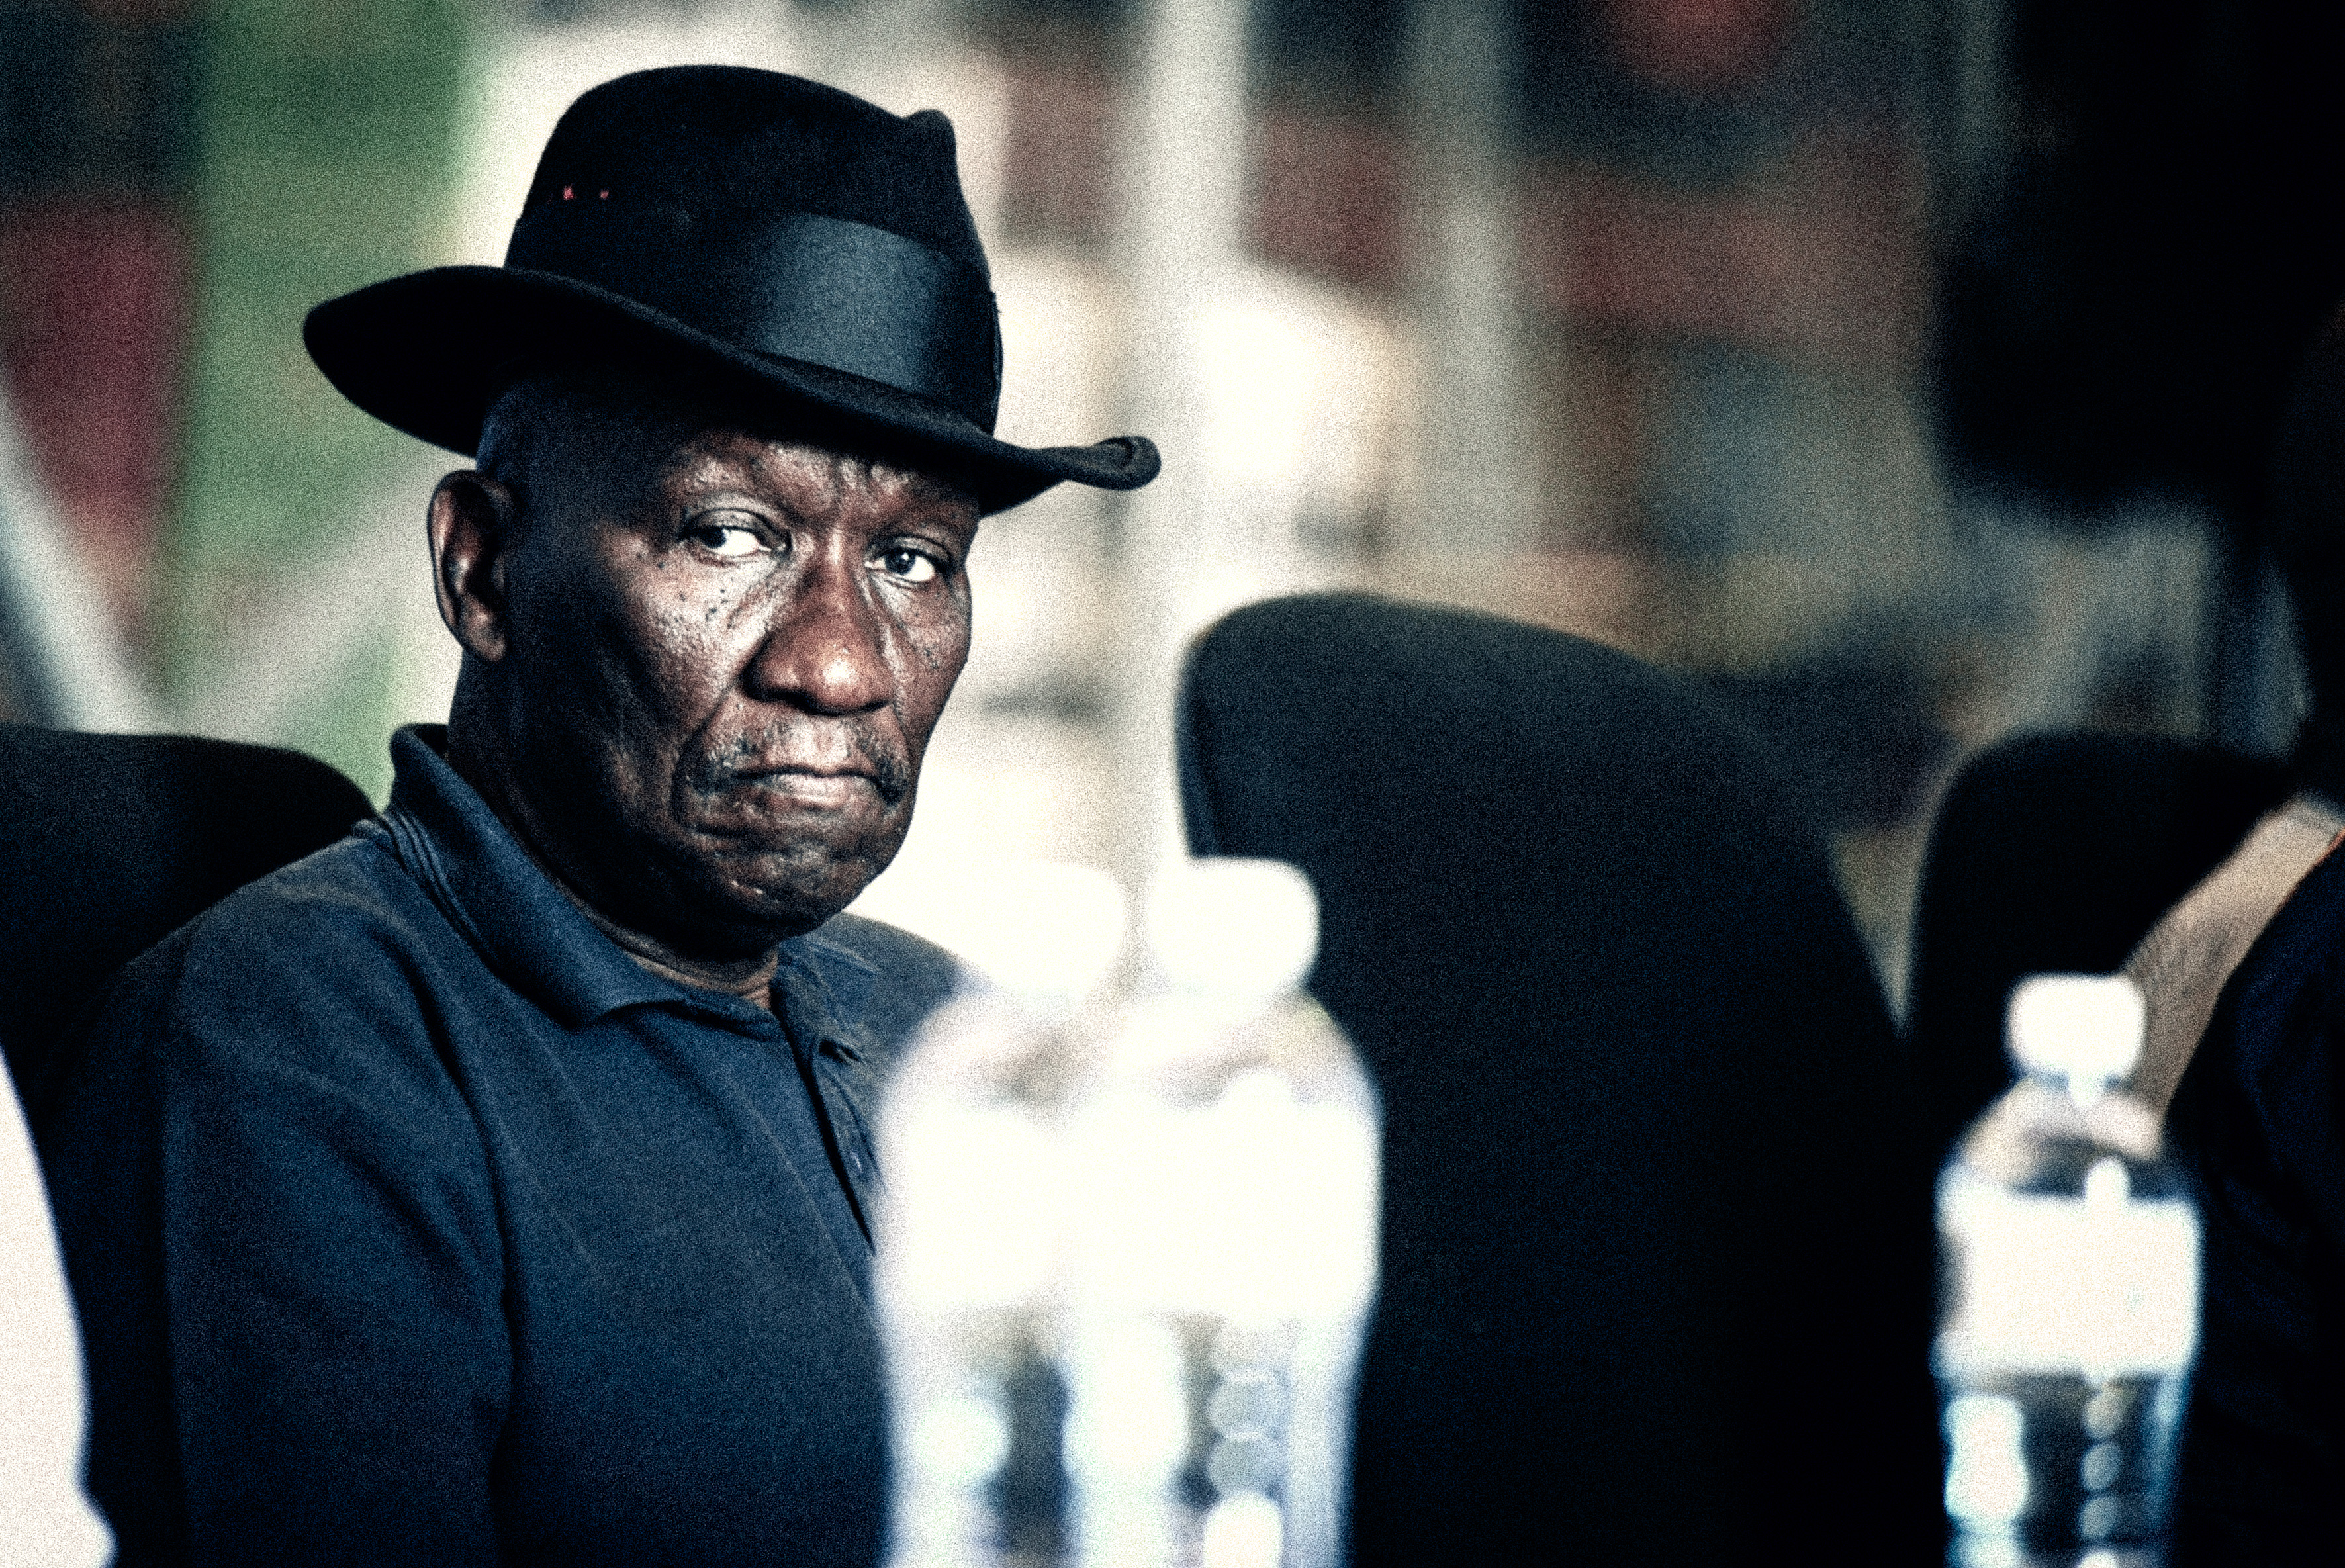 Bheki Cele's 2018 Report Card – F for Failure in Five Key Areas